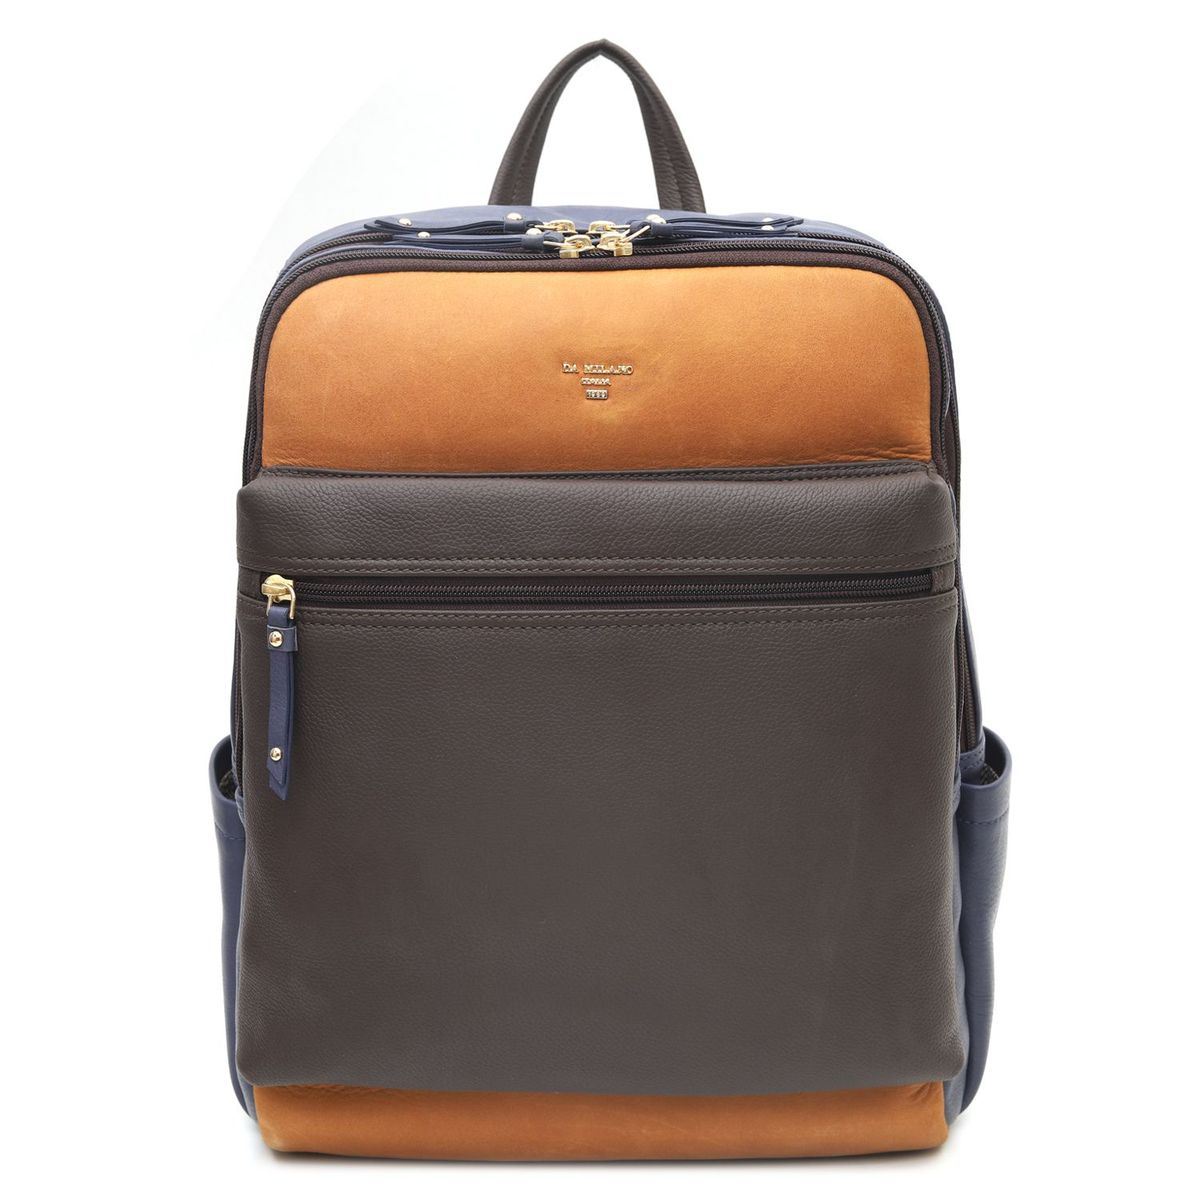 07350c5b2ebd ... Da Milano Brown   Blue Backpack · zoom ...